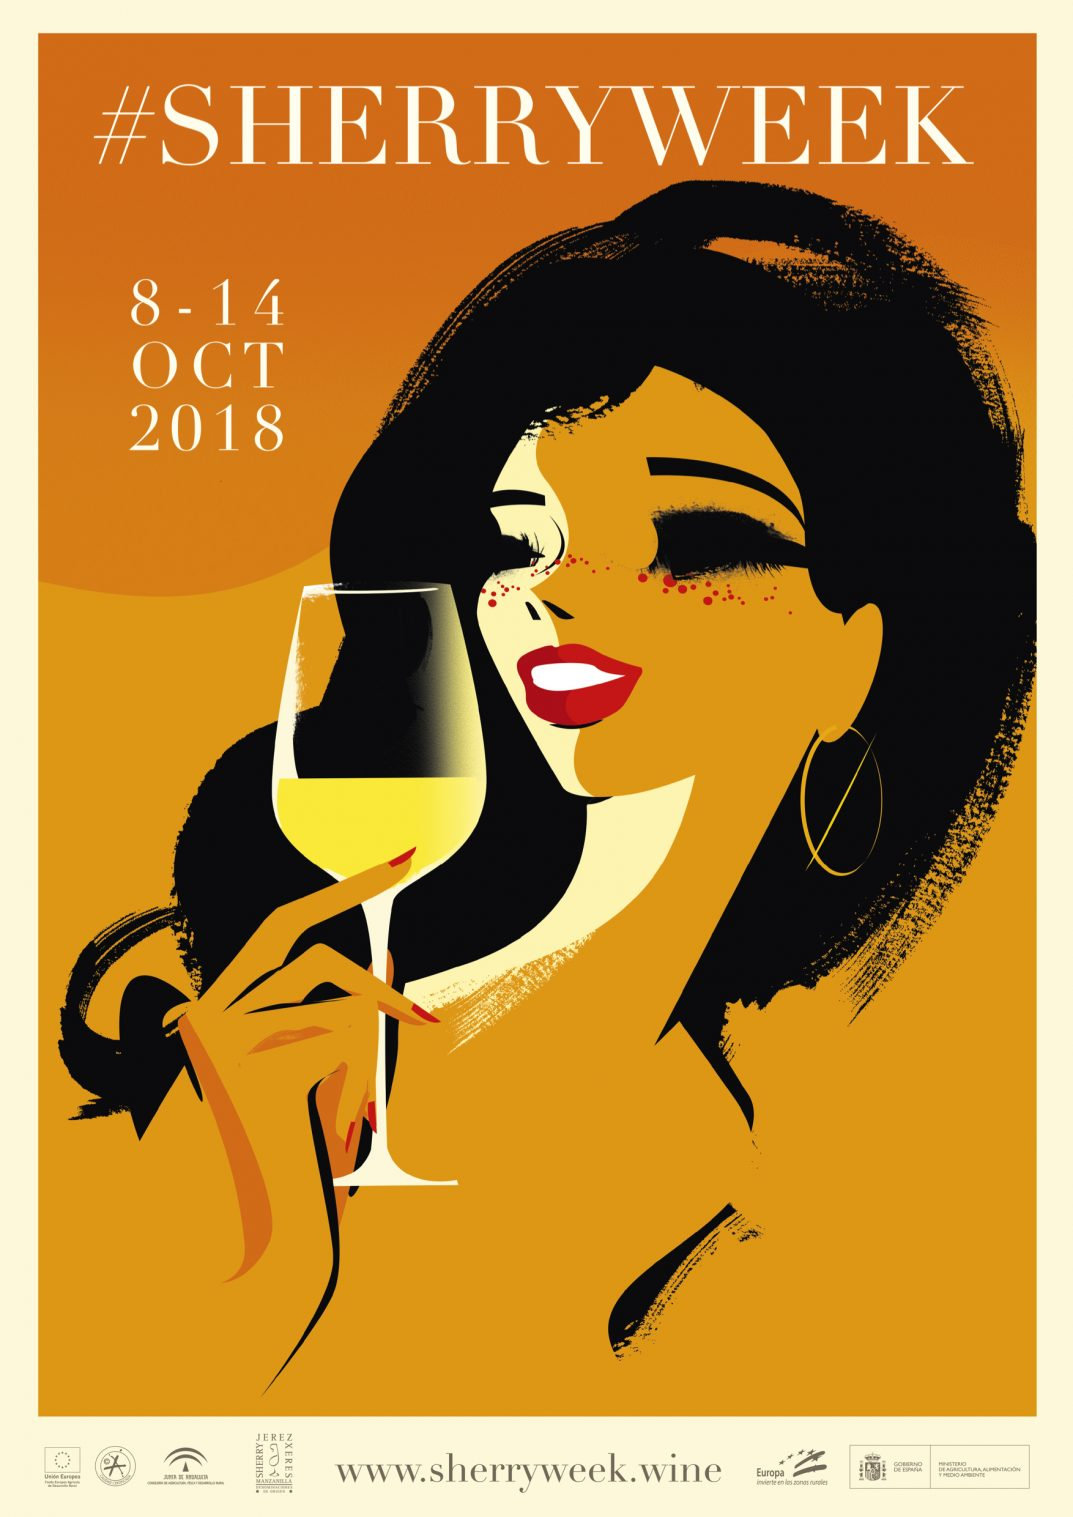 International Sherry Week 2018